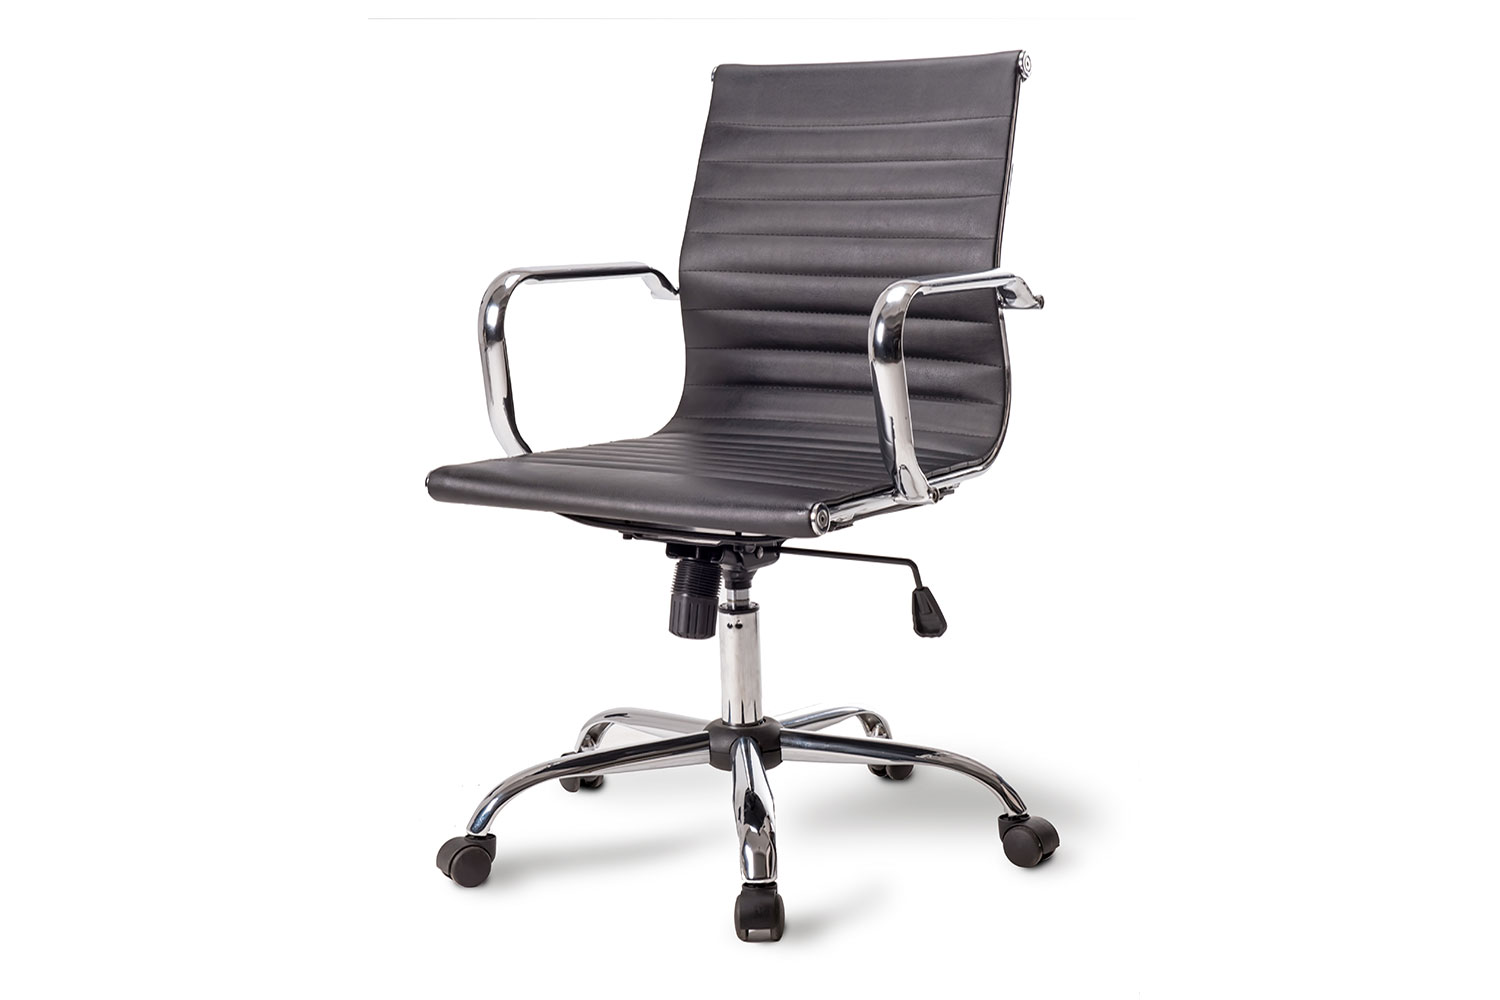 ergonomic chair harvey norman club with ottoman line office new zealand